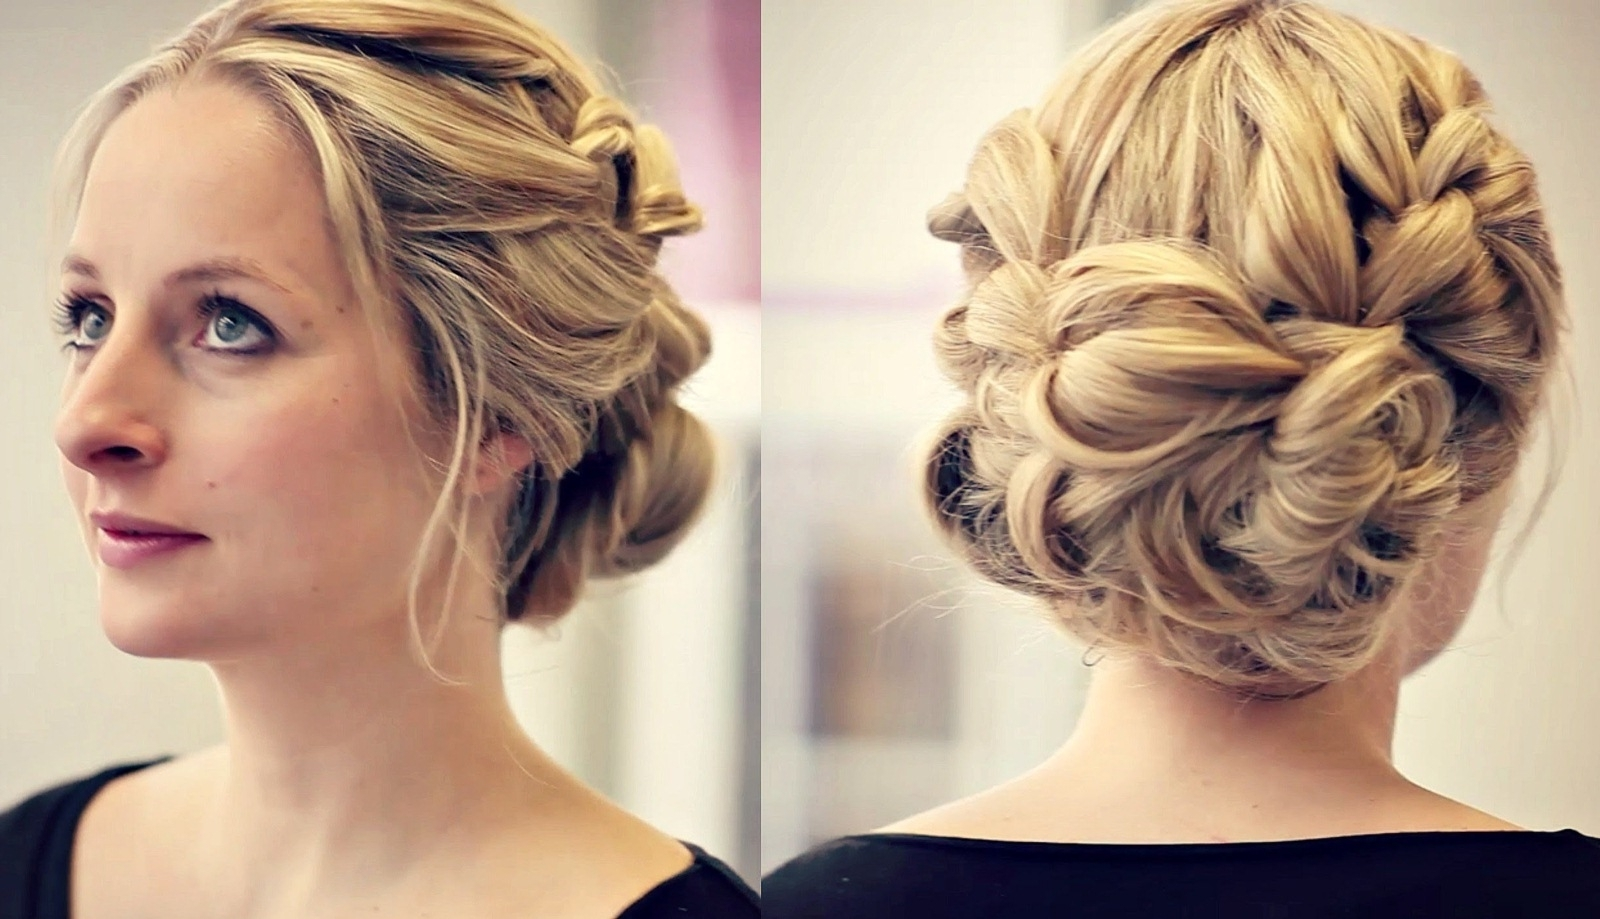 Bridal Hairstyles For Short Hair Updos | Trend Hairstyle And Haircut Throughout Updo Hairstyles For Mother Of The Groom (View 4 of 15)